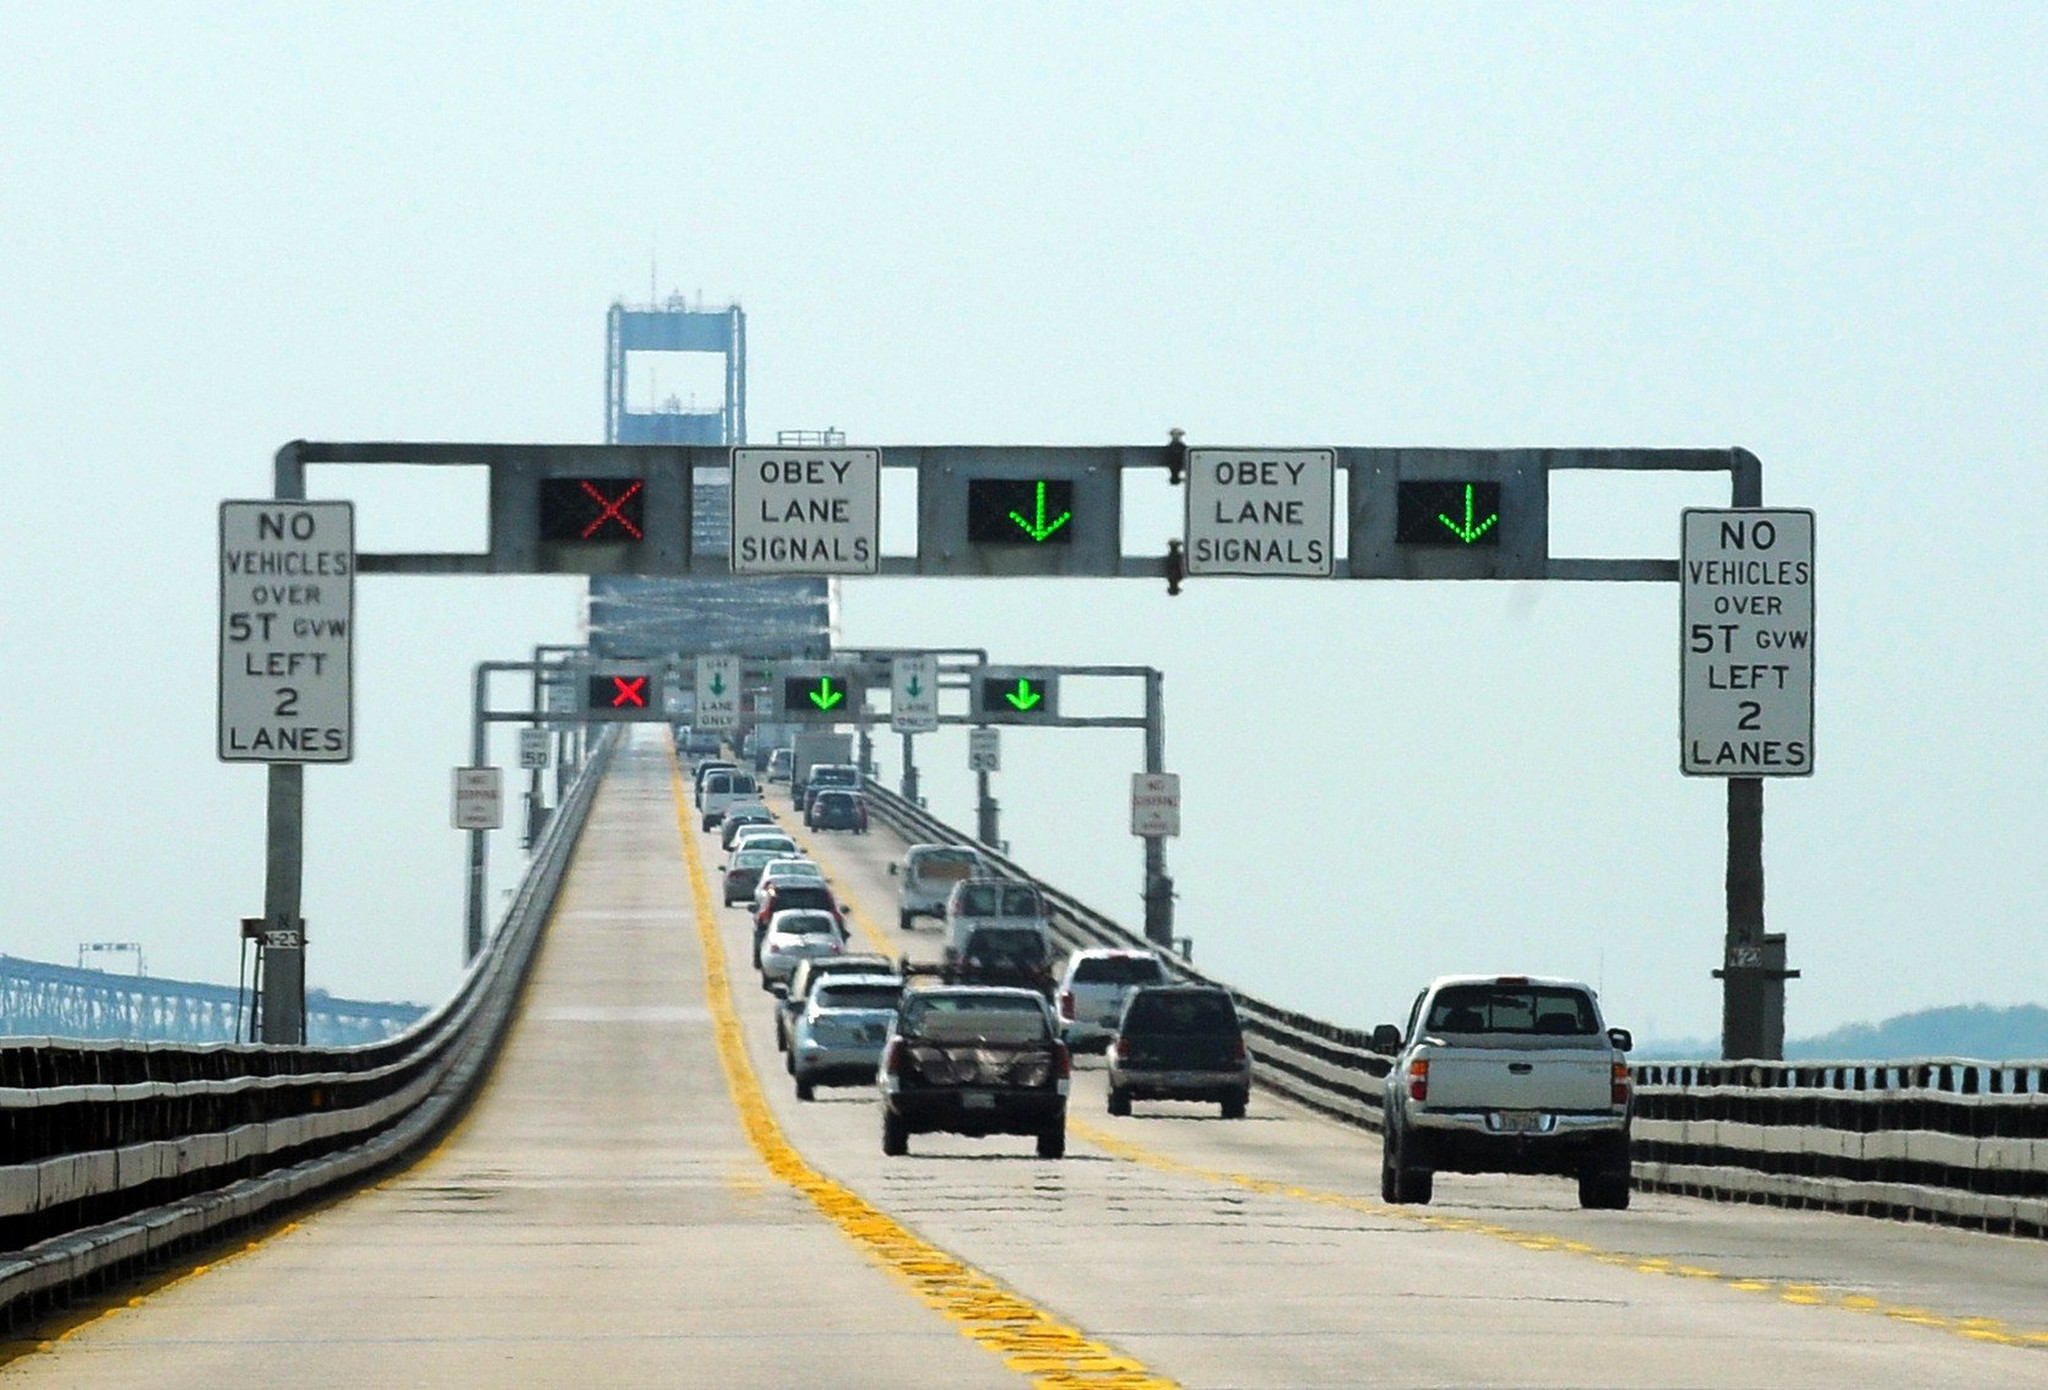 Record number of Marylanders expected to travel for Fourth of July weekend